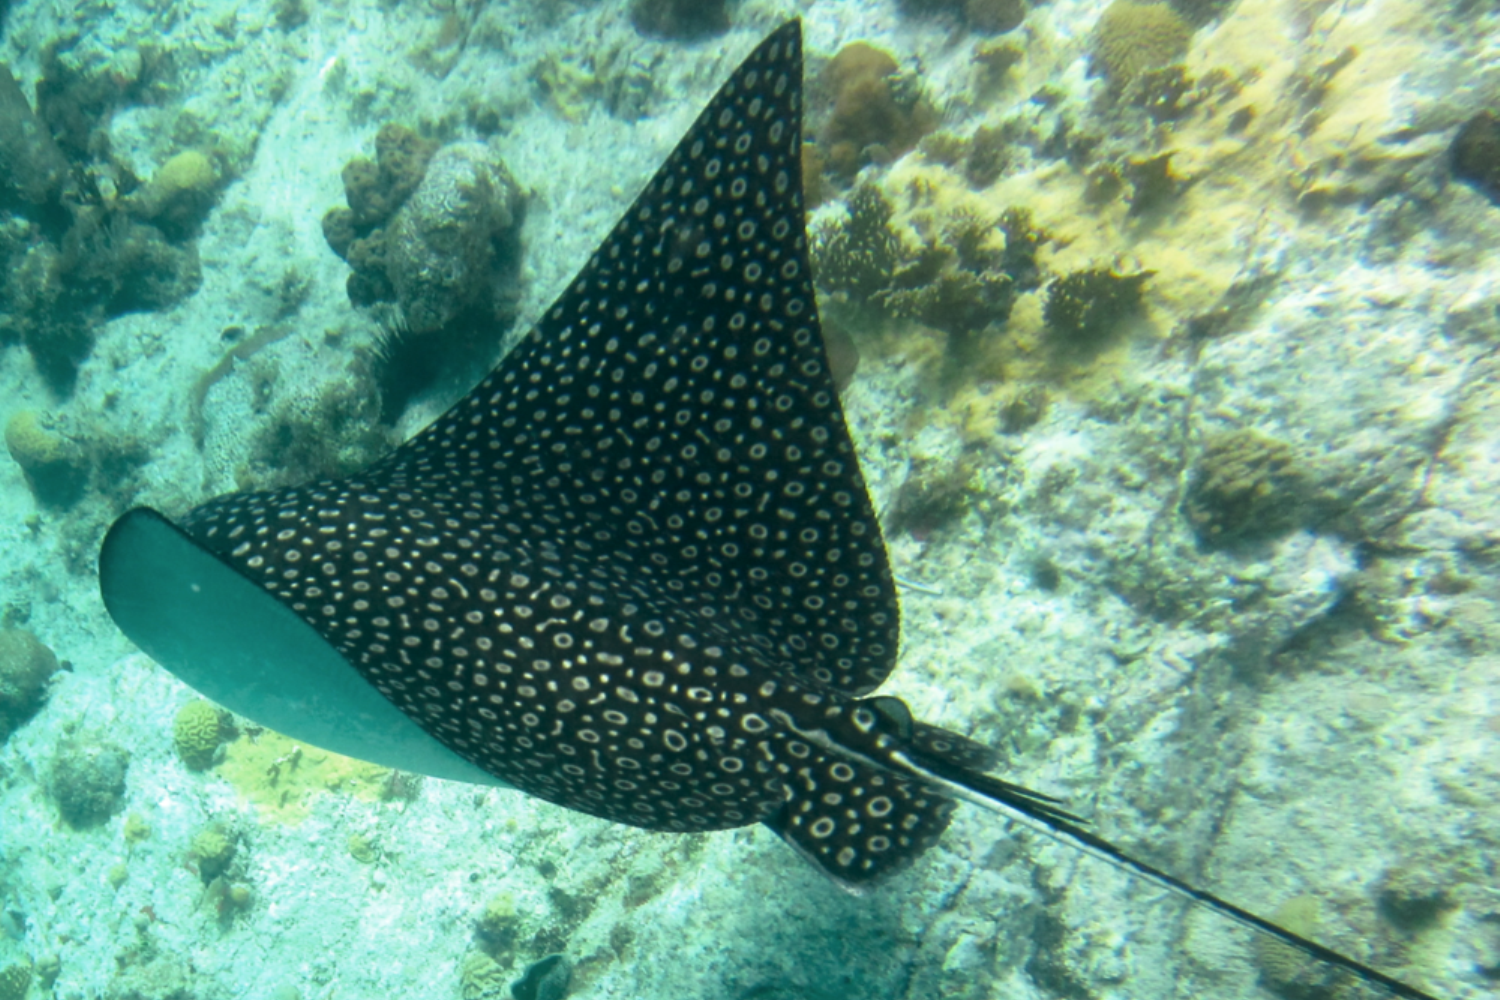 A SPOTTED EAGLE RAY TAKES A SWIM